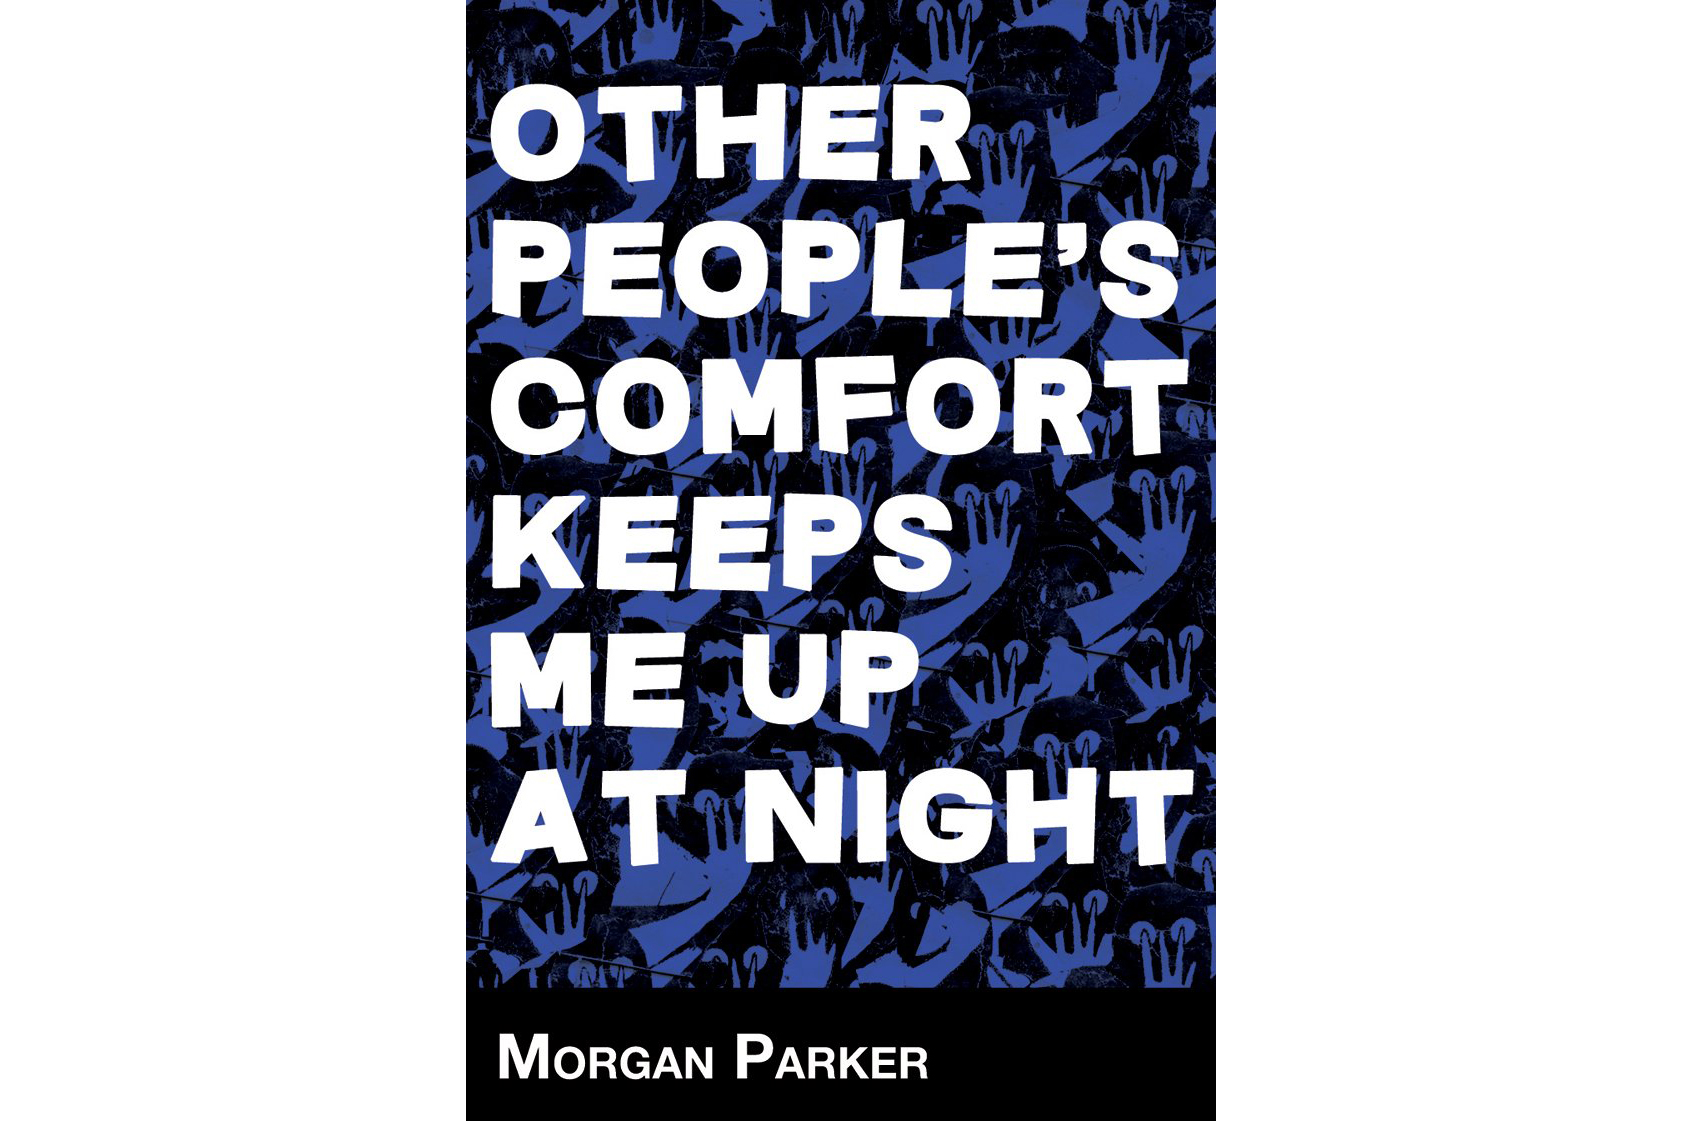 Other People's Comfort Keeps Me Up At Night, by Morgan Parker